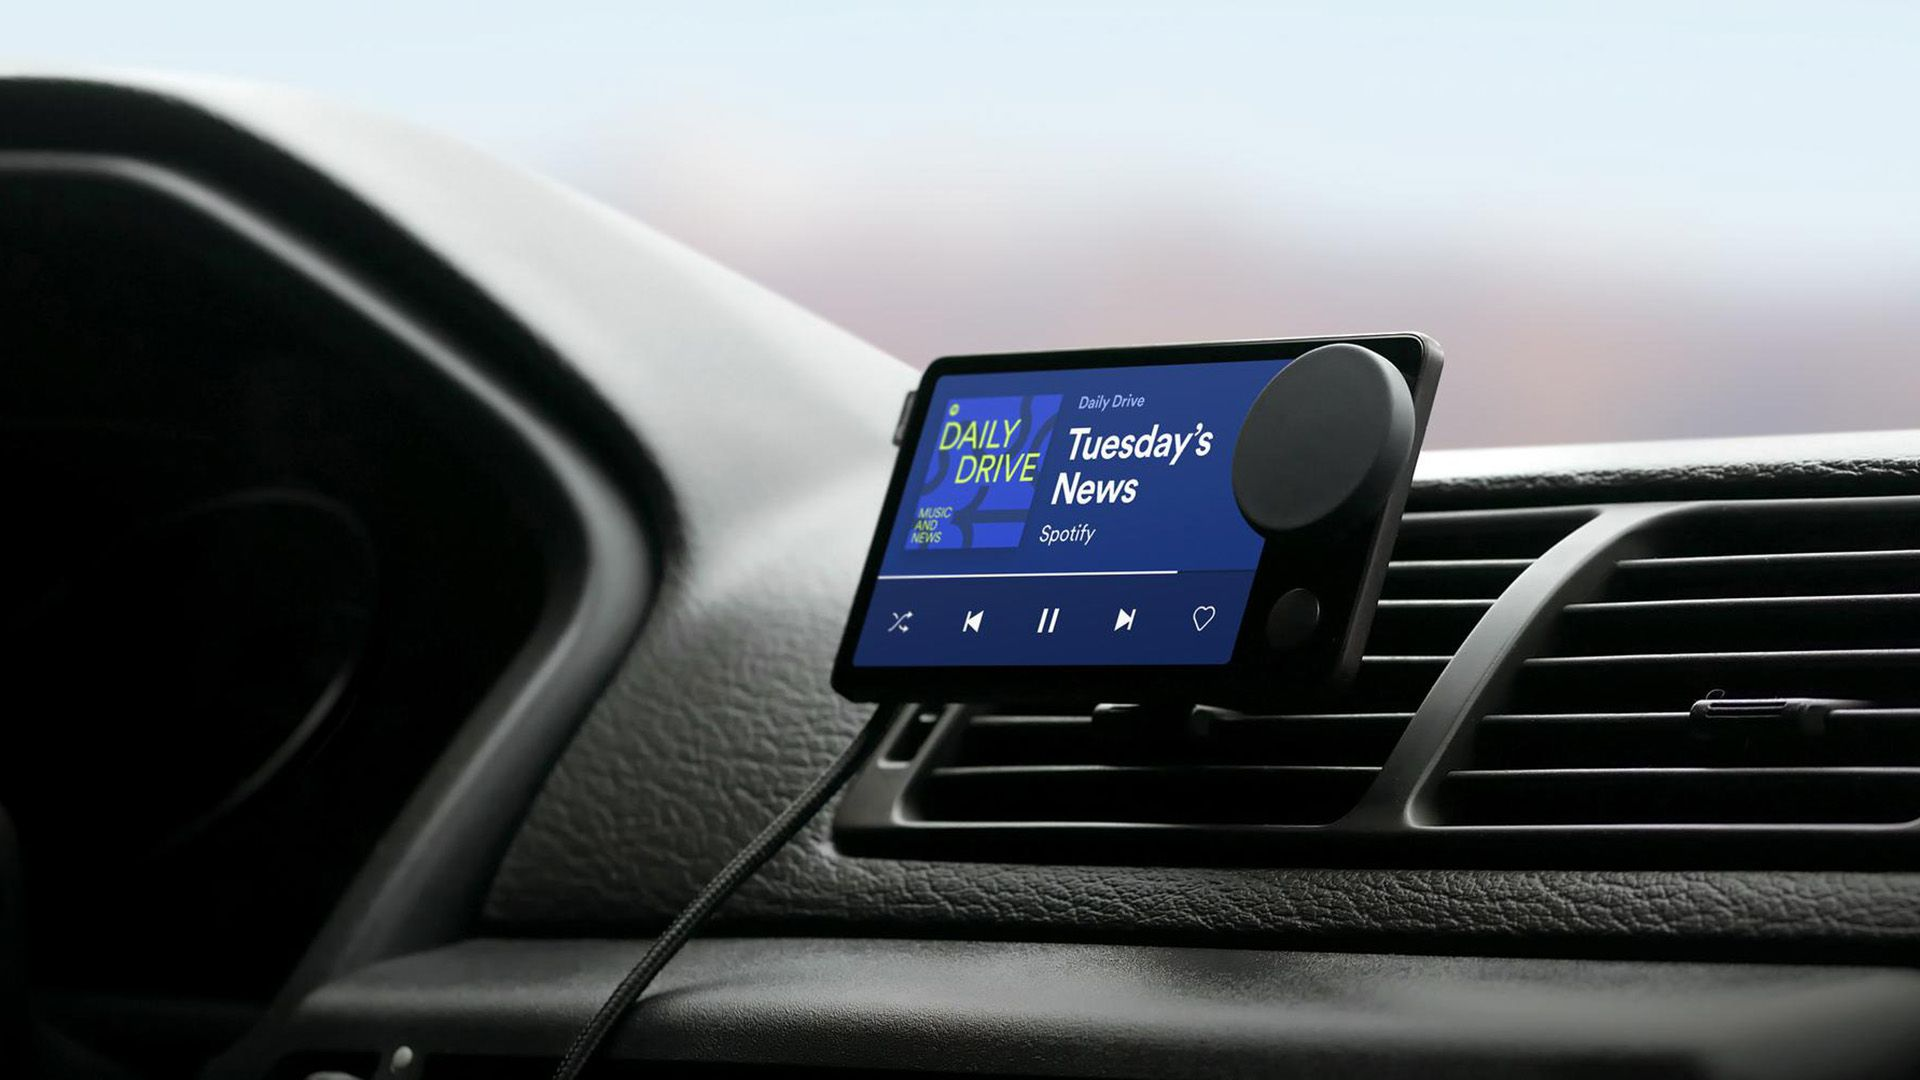 Spotify Car Thing mounted in a car with news playing